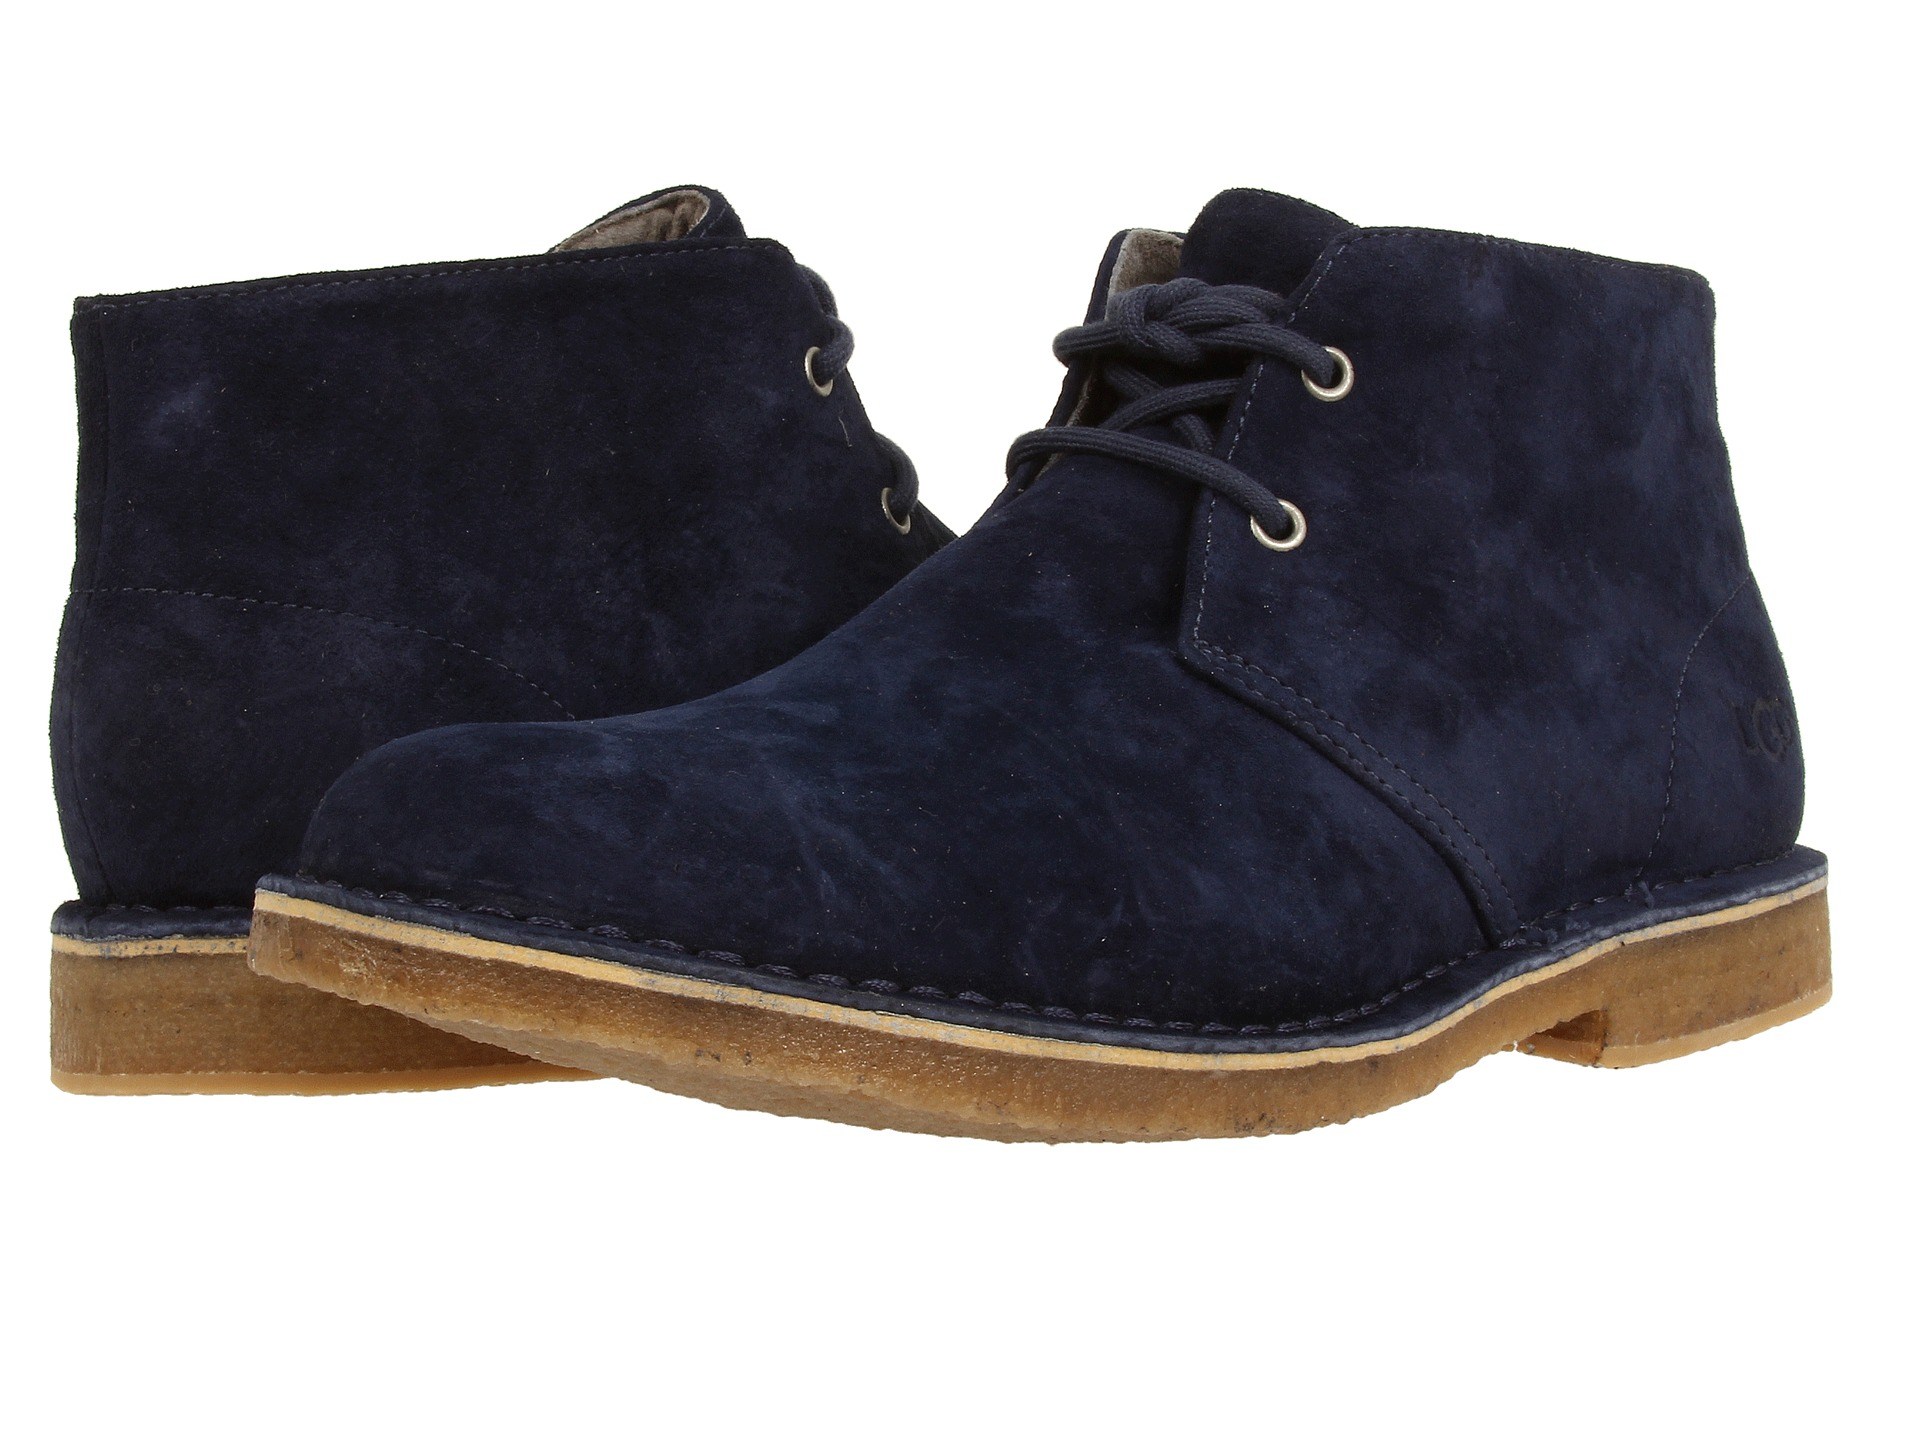 7bb3ad62a3b Mens Ugg Australia Leighton Boots - cheap watches mgc-gas.com